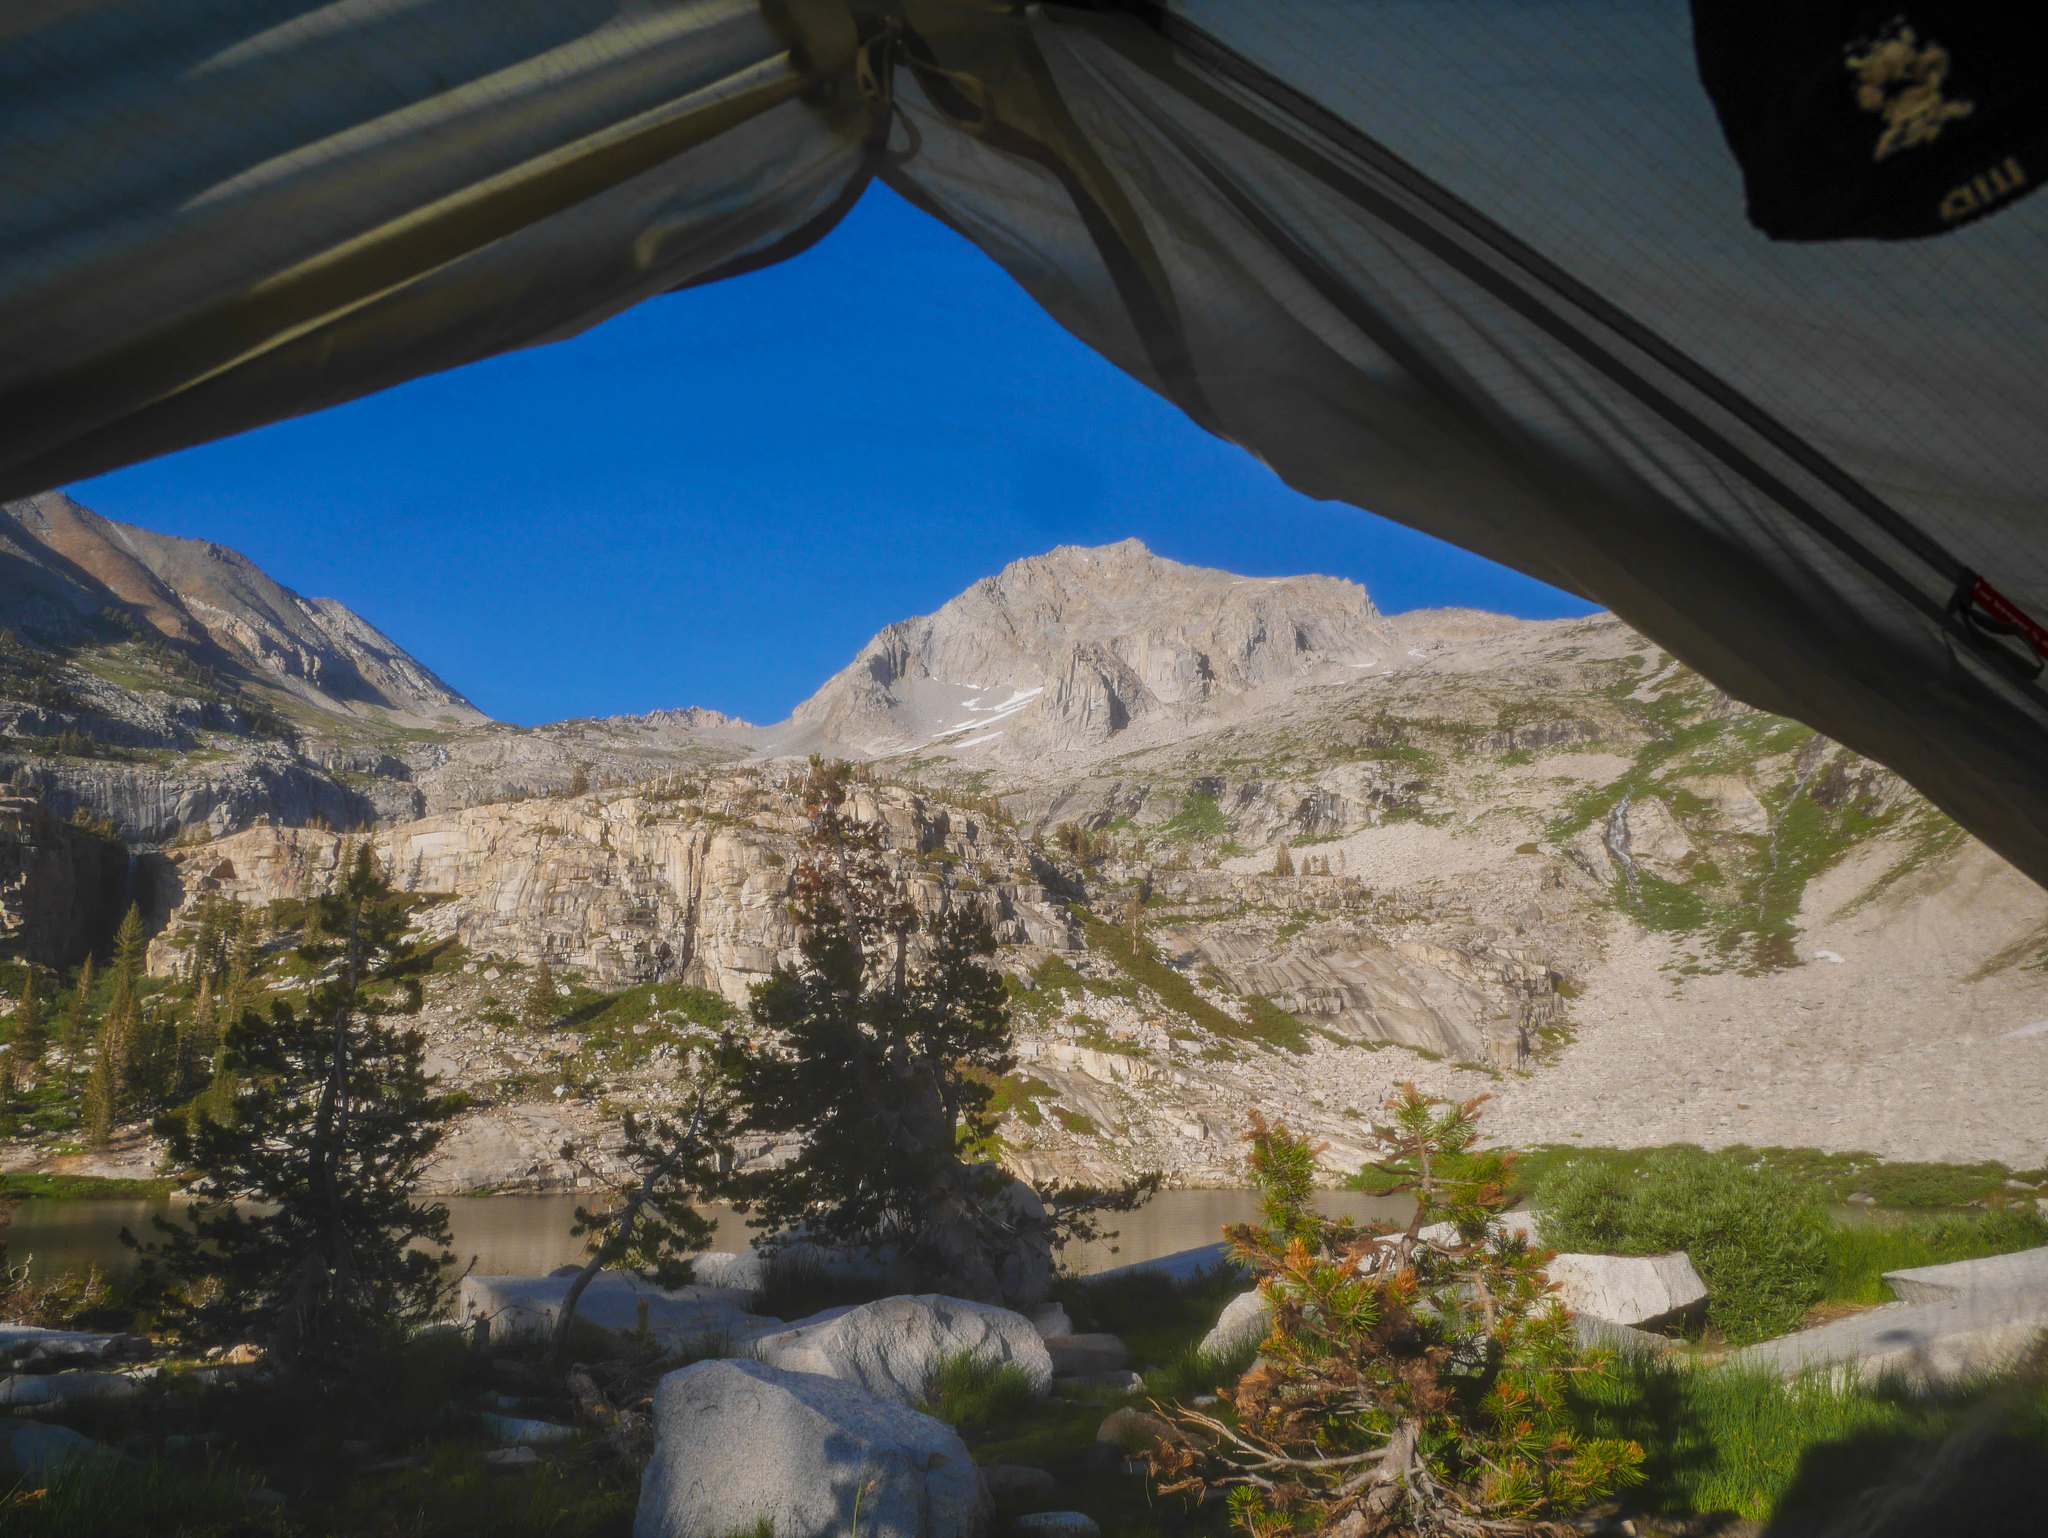 Tent view at Tamarack Lake